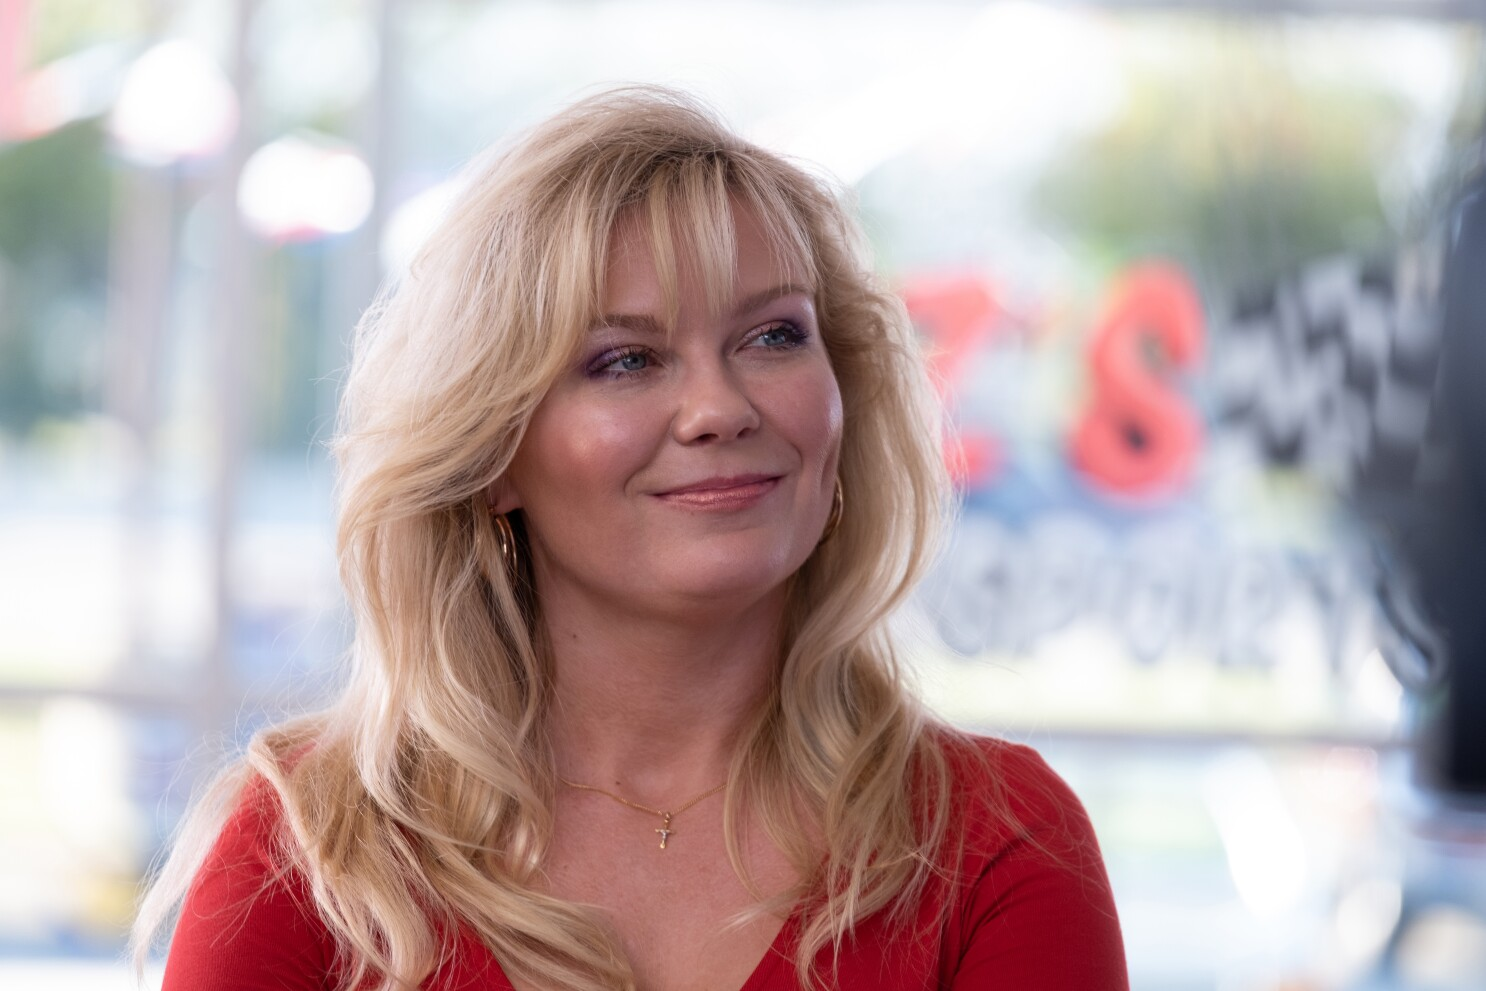 What's on TV This Week: 'On Becoming a God in Central Florida' with Kirsten Dunst and more